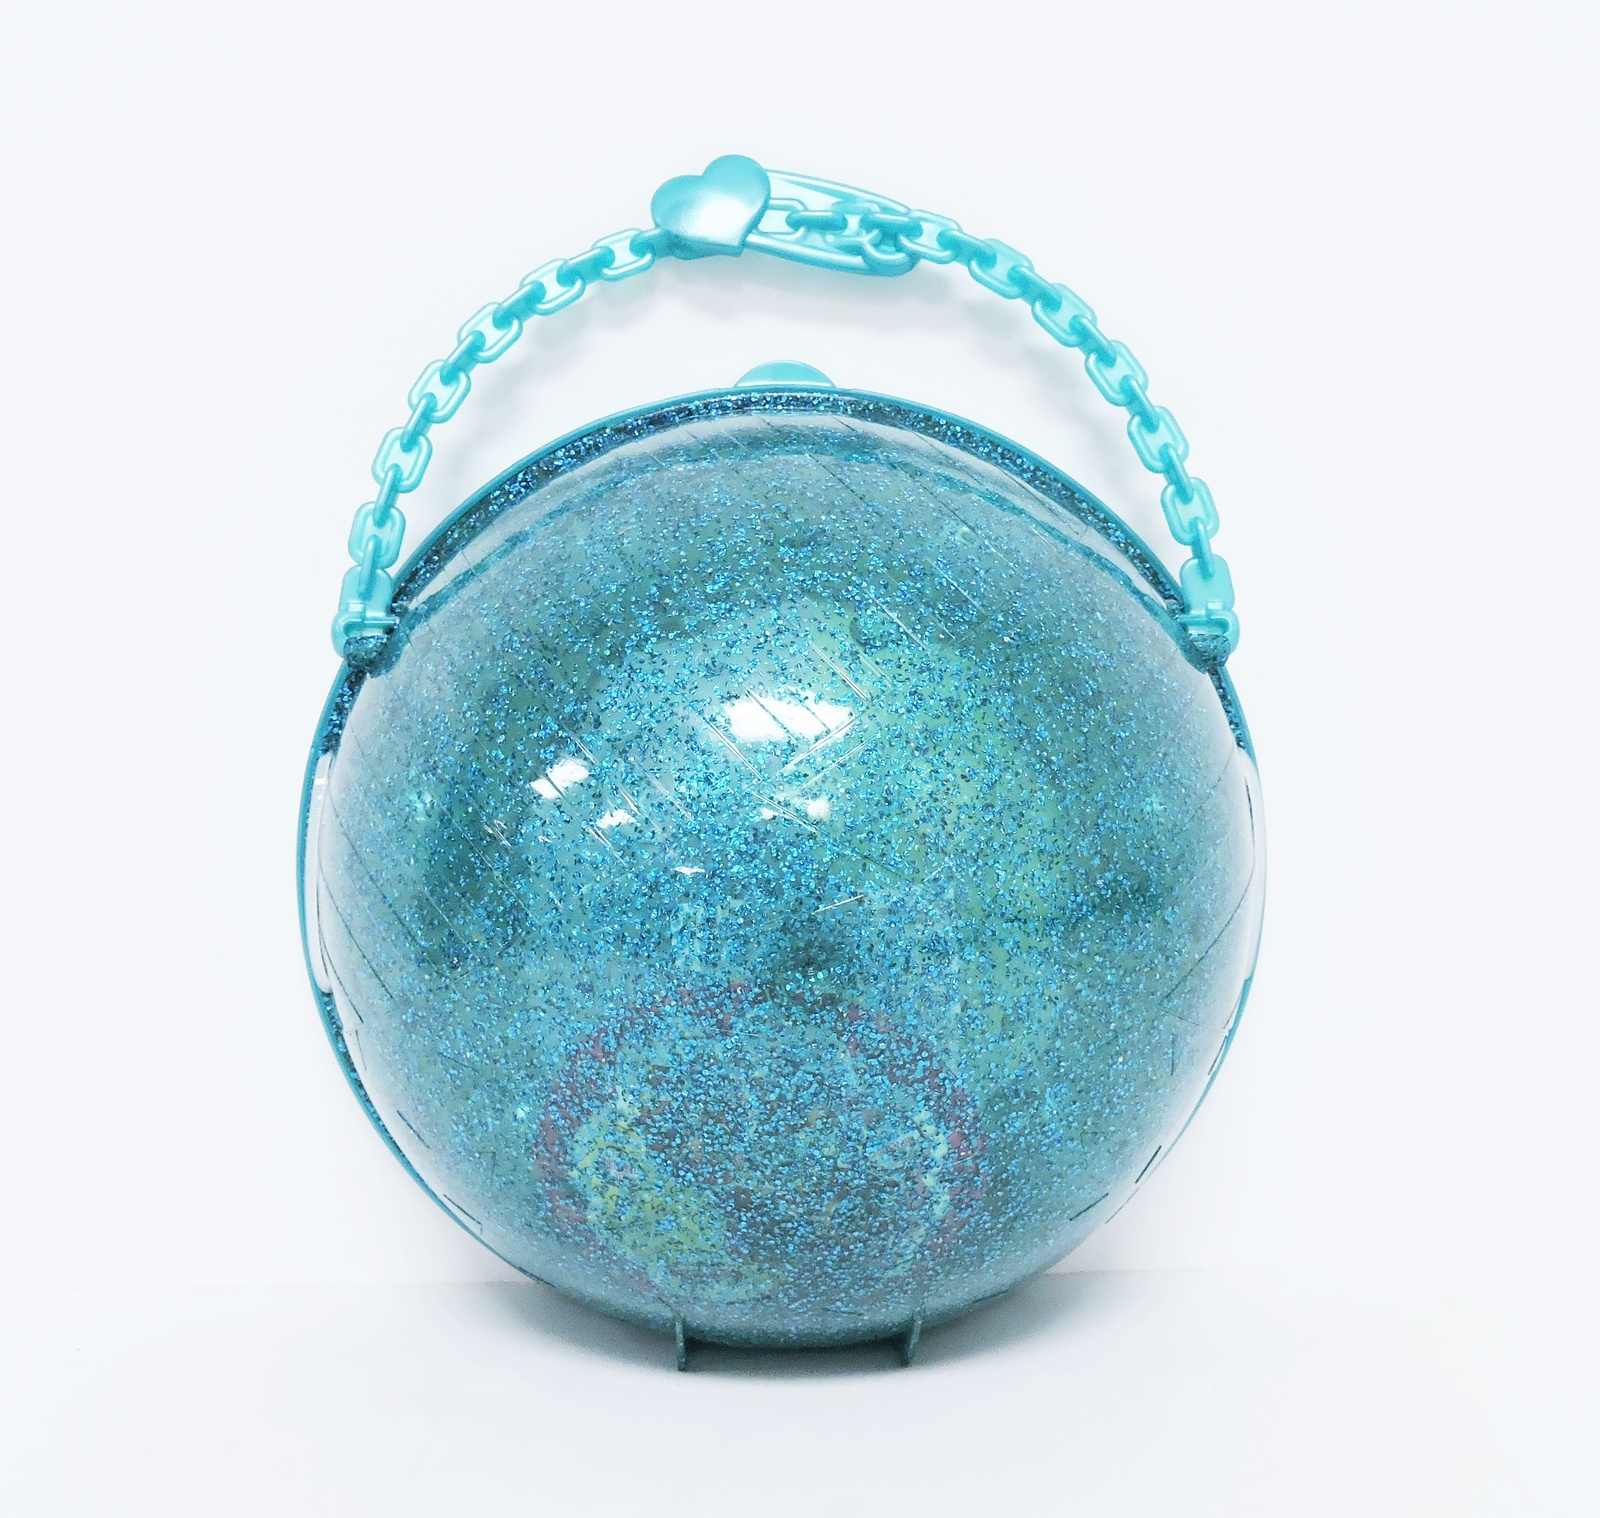 Lol Surprise Pearl Surprise Teal Mermaid Series Ball Other